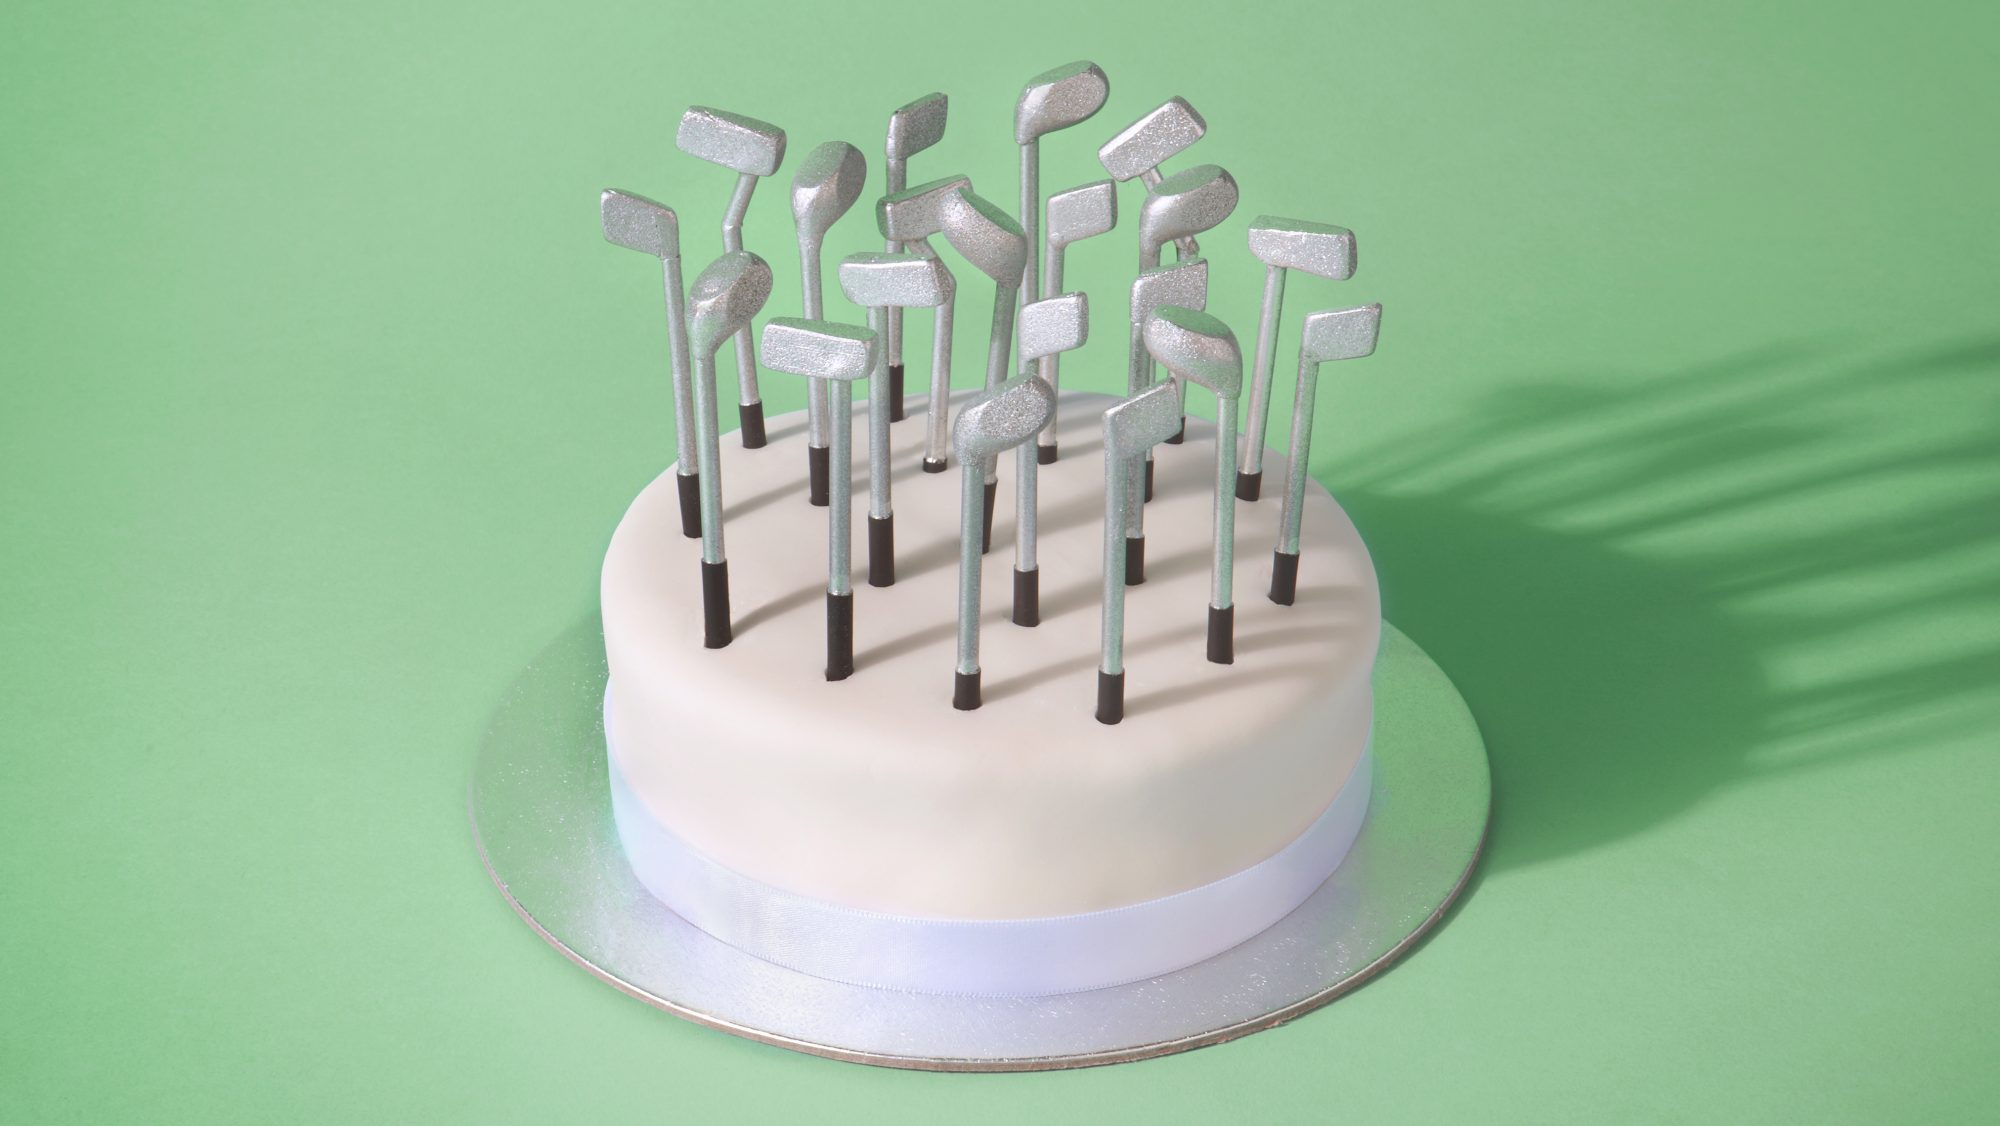 How to get motivated for retirement (cake with golf clubs)